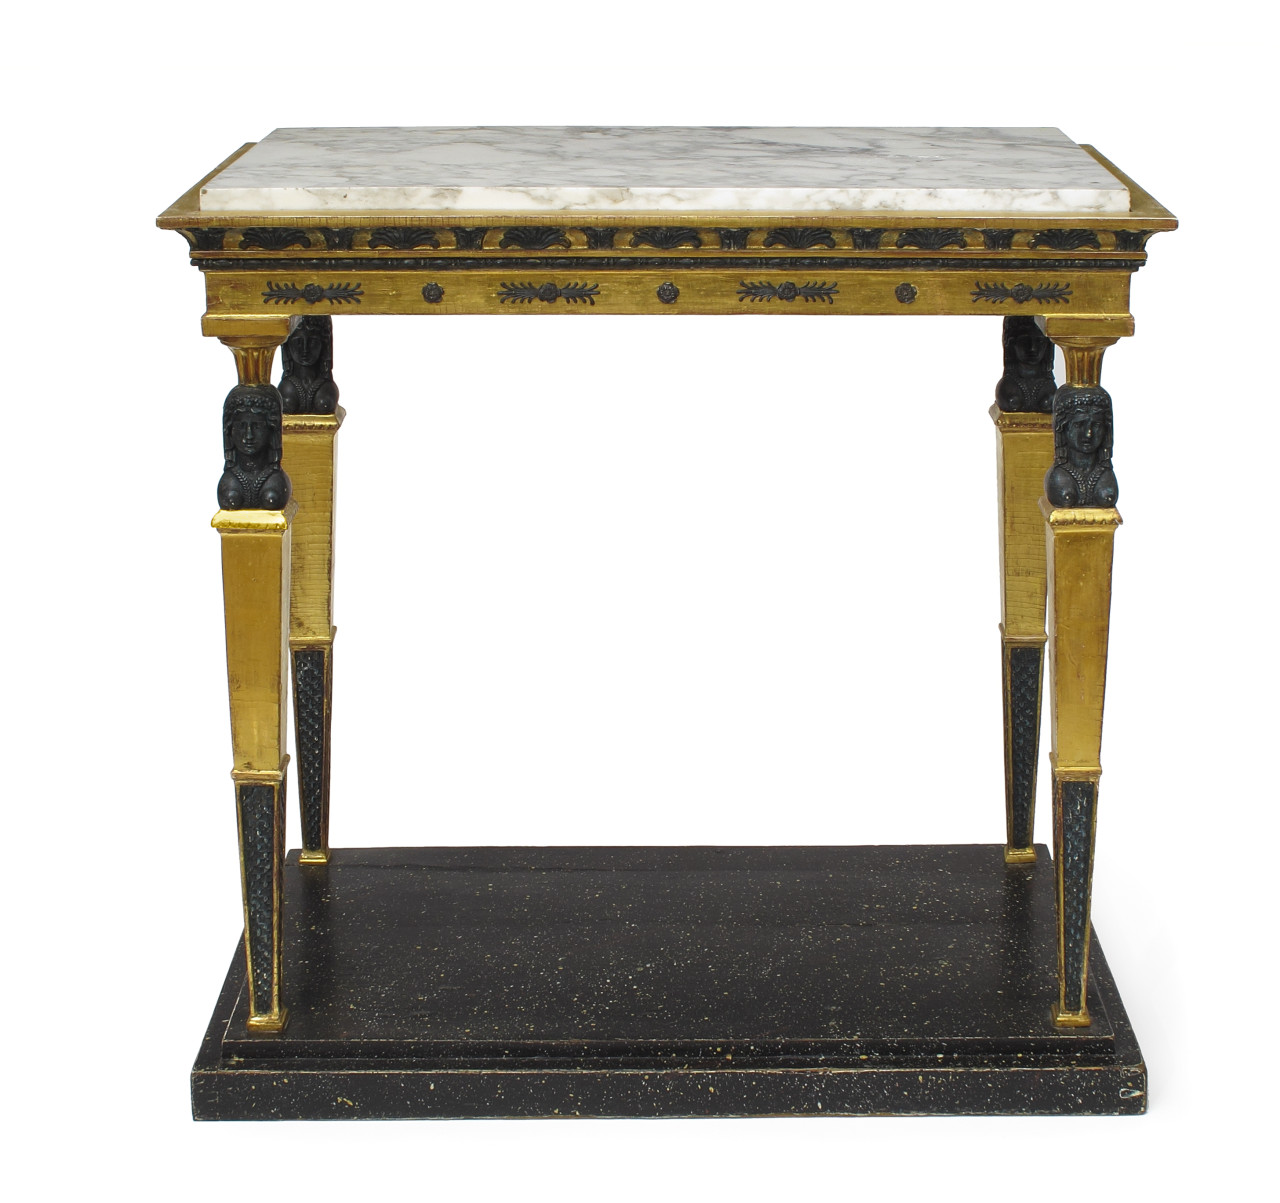 A late Gustavian console table